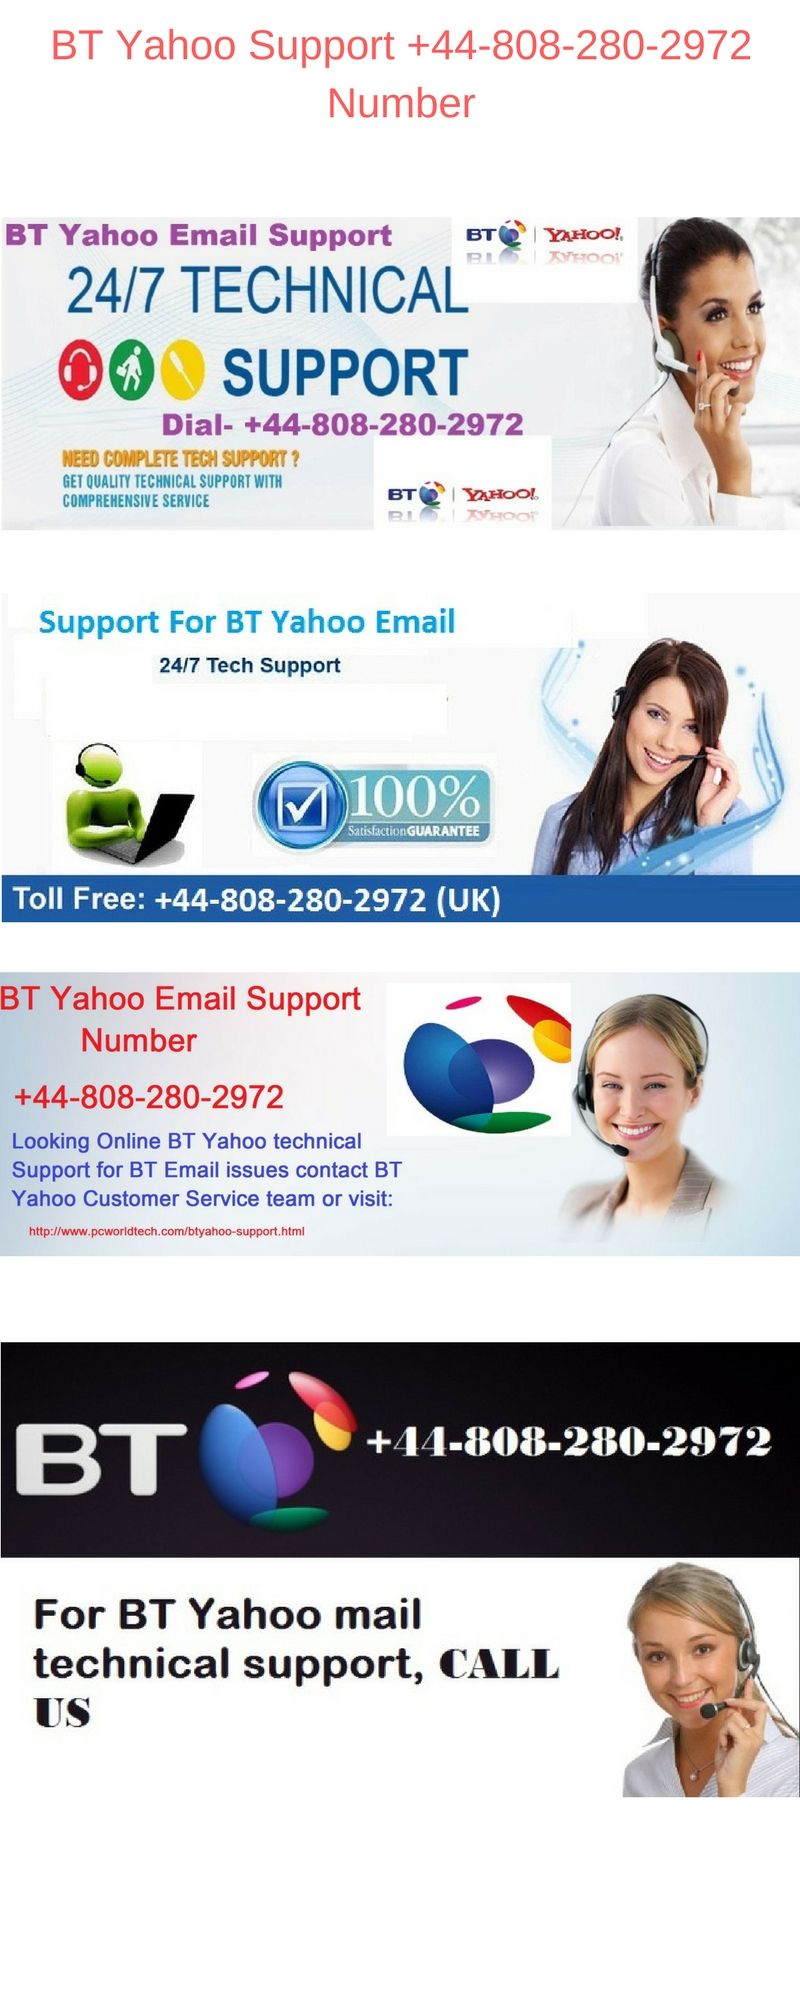 Just Contact Toll Free Bt Yahoo Support 44 808 280 2972 Number